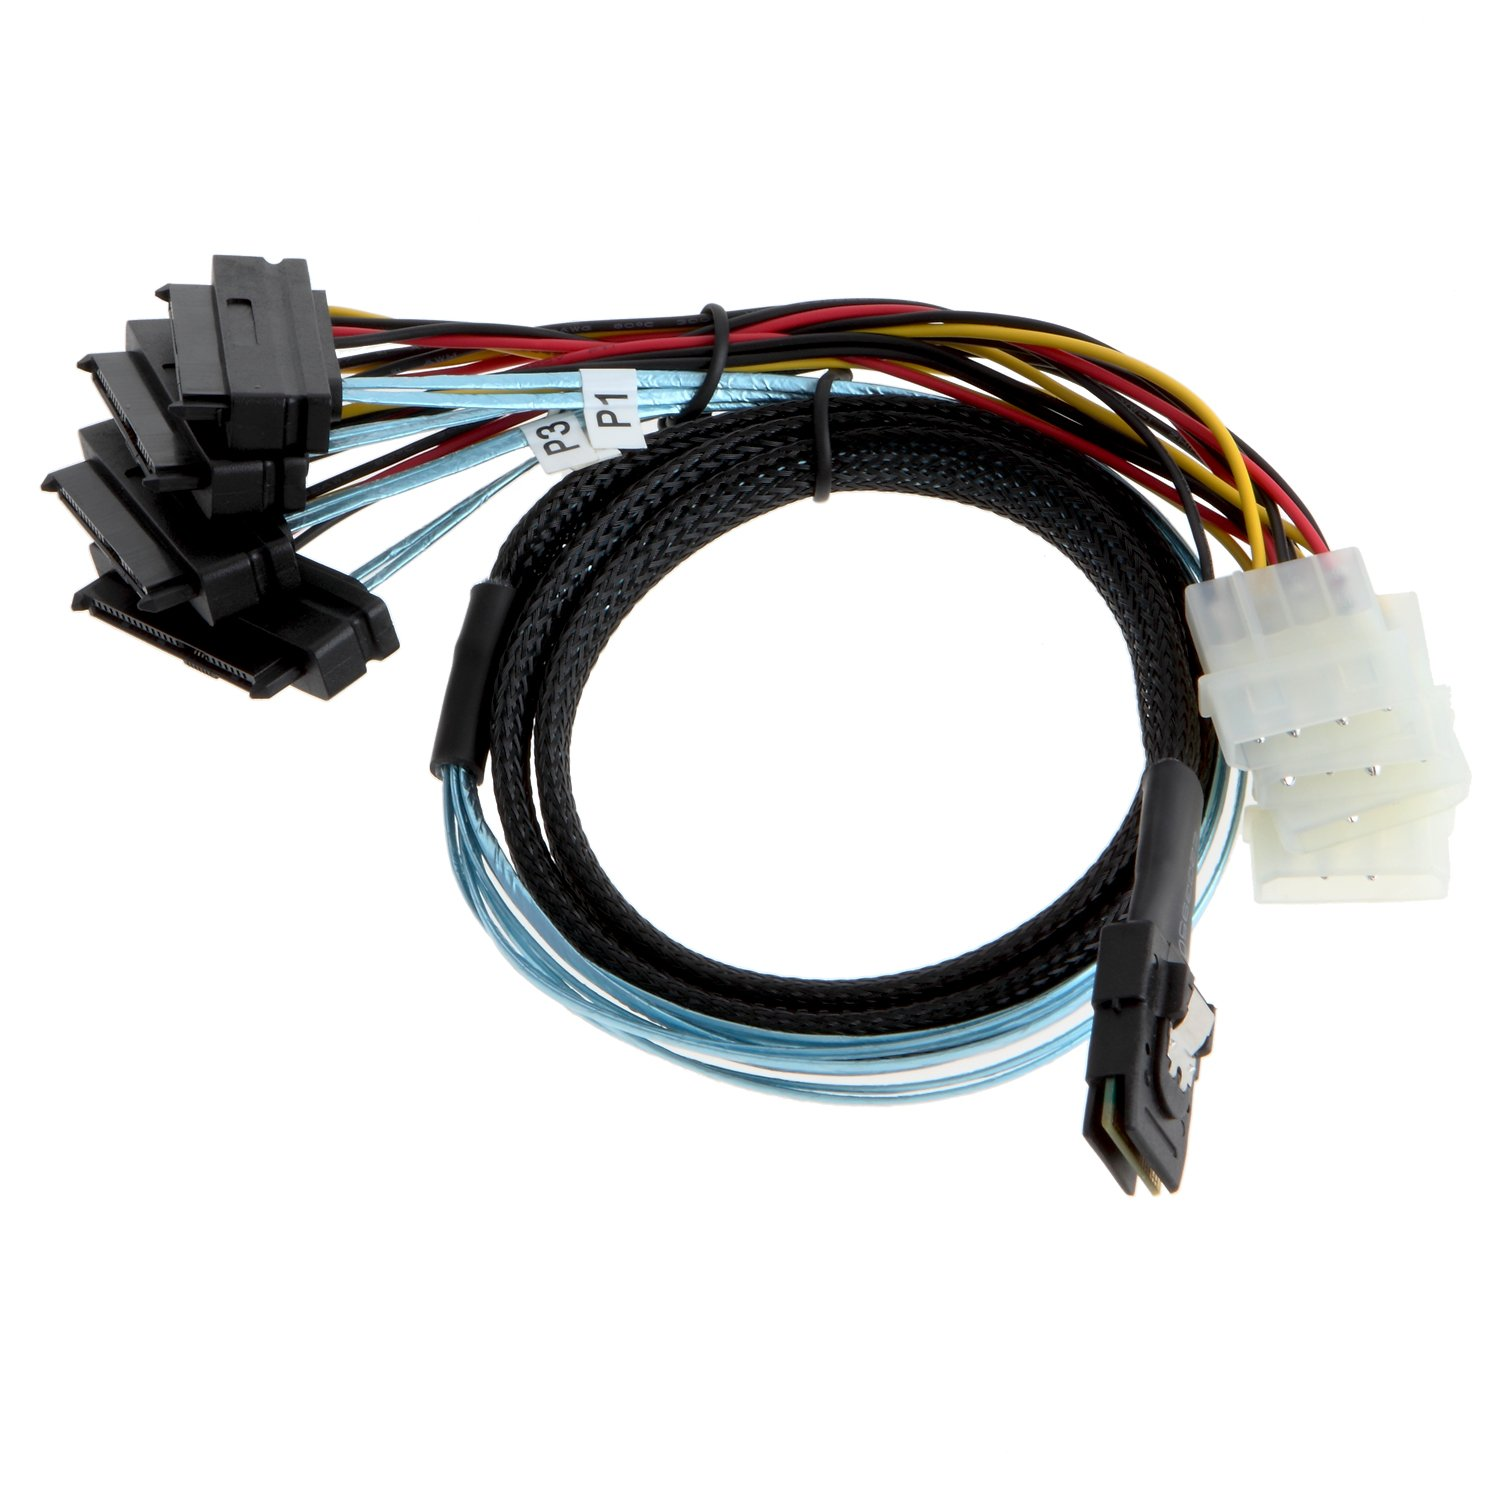 CableCreation Mini SAS 36Pin (SFF-8087) Male to 4x SAS 29 (SFF-8482) female with 4pin Power Cable, Mini SAS Host to 4 SAS Target Cable, 3.3FT by CableCreation (Image #1)